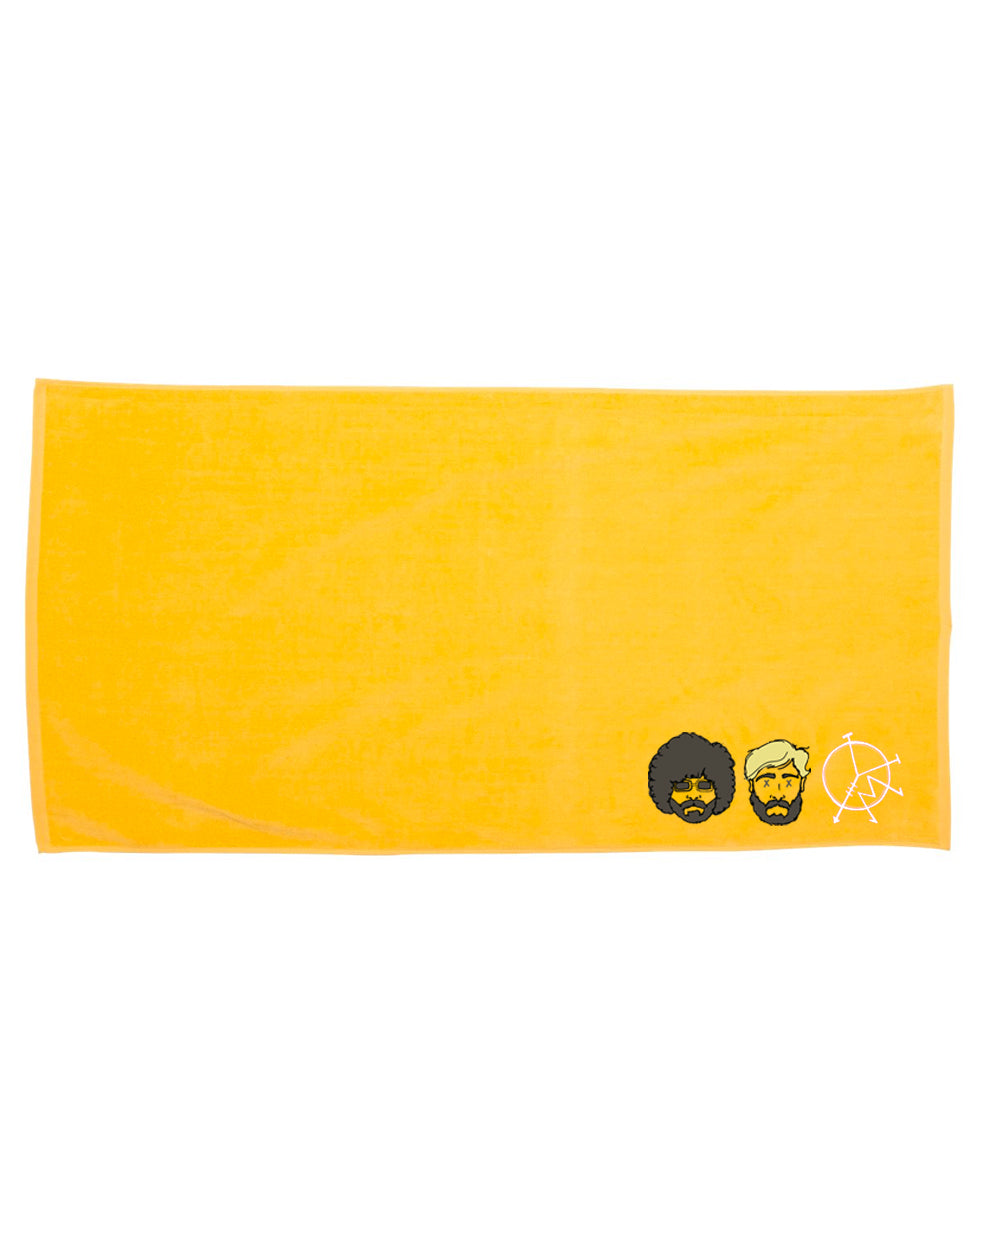 Yawn Mower : Beach Towel